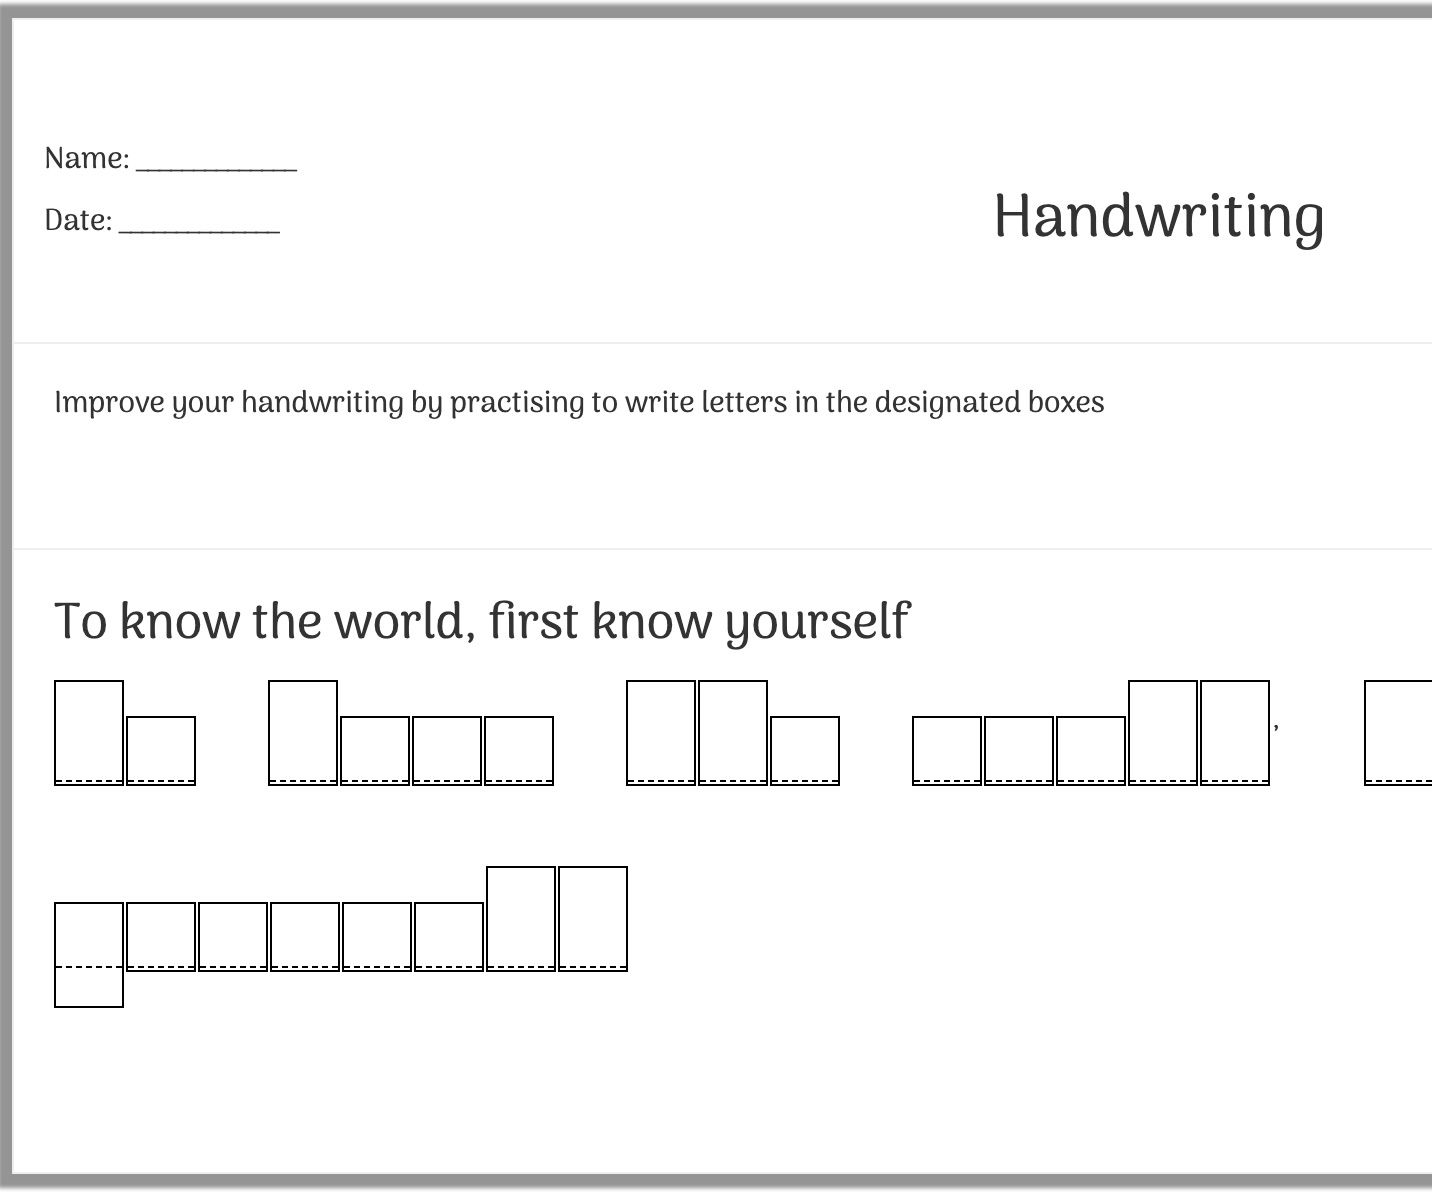 handwriting helper worksheet generator (sentence based)